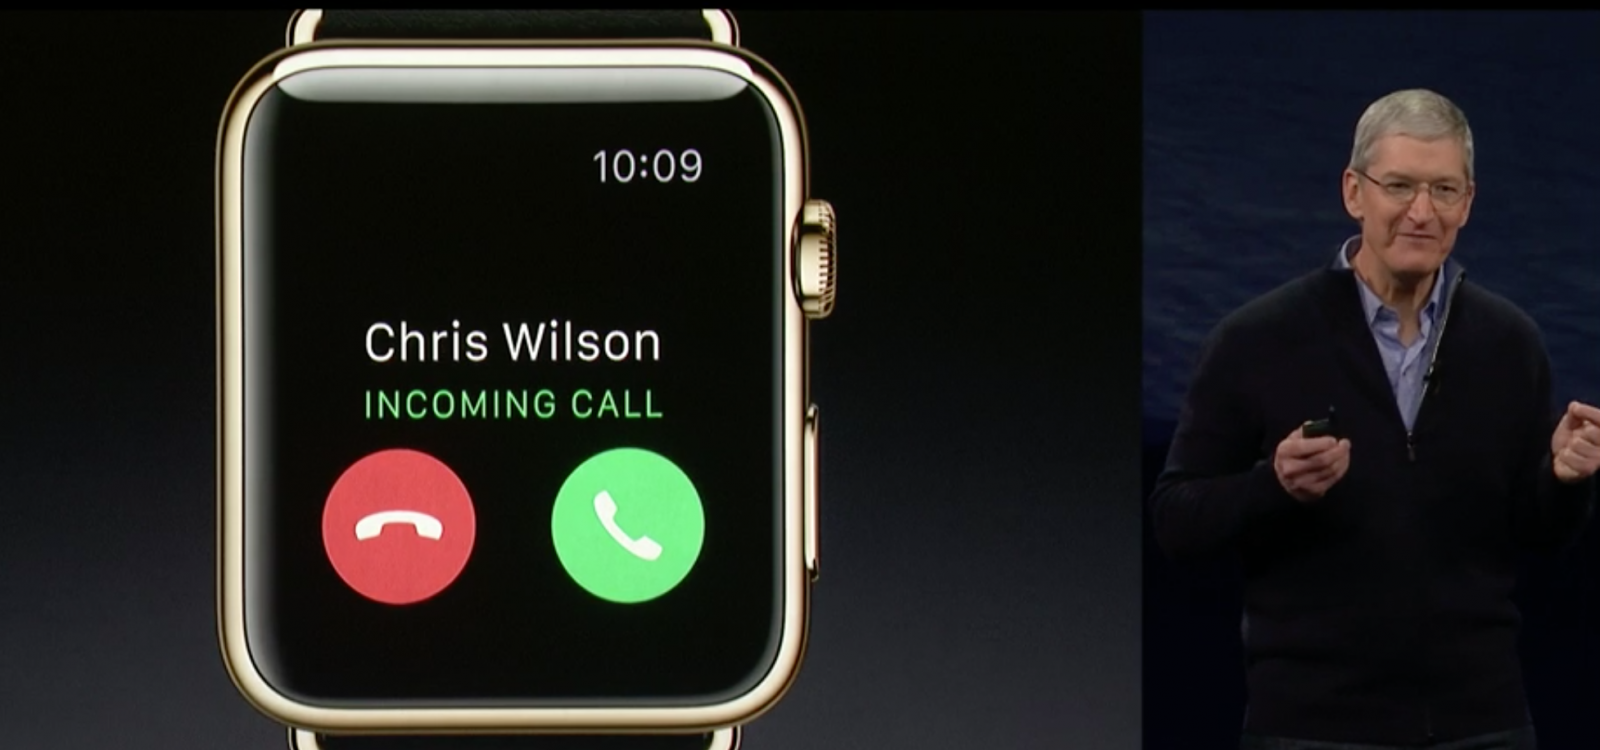 Apple Watch calls